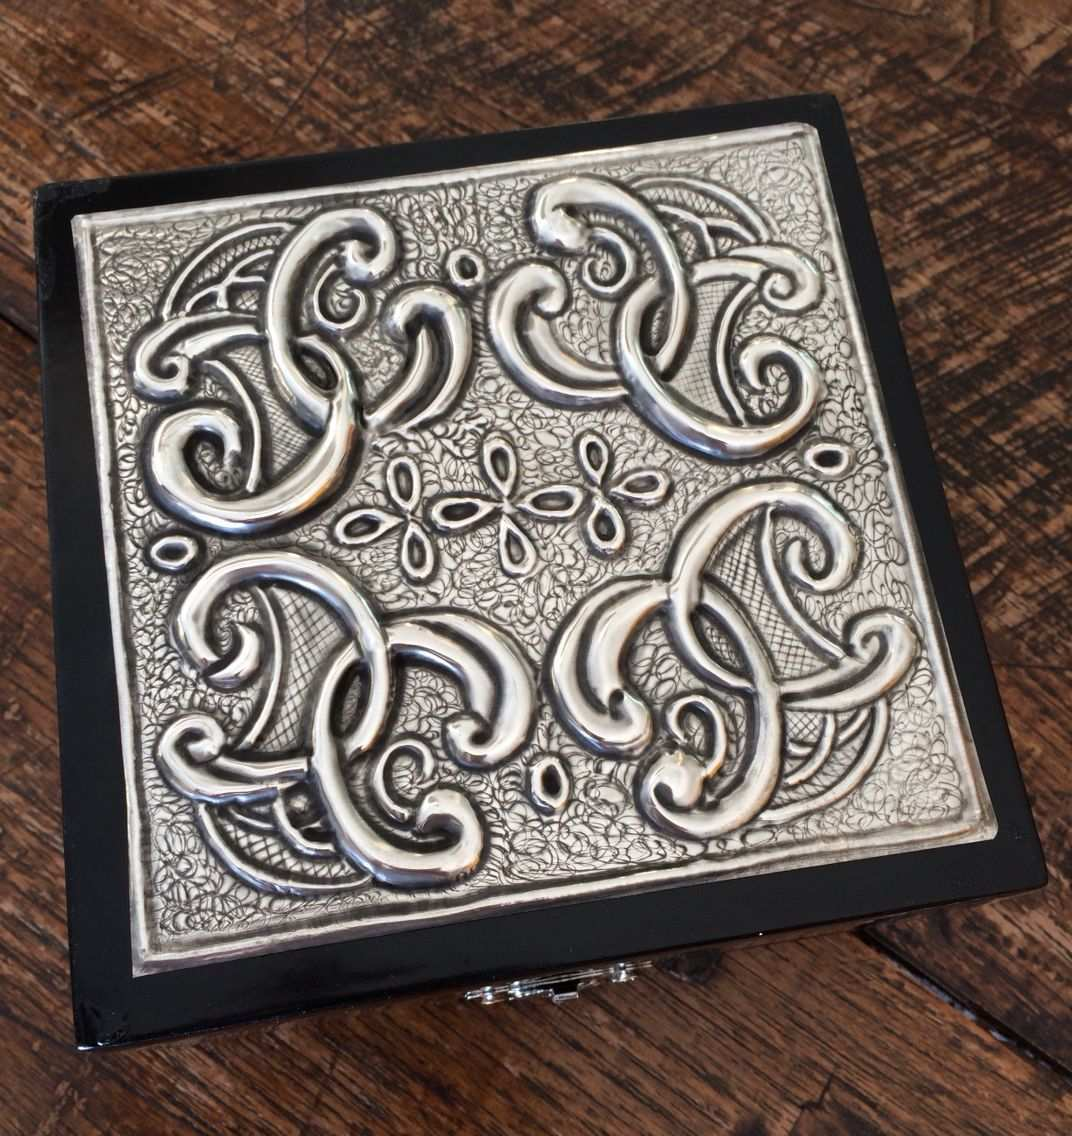 Trinket Box Made At The Pewter Room By Lee Www Thepewterroom Co Za Pewter Embossing Aluminum Foil Art Pewter Art